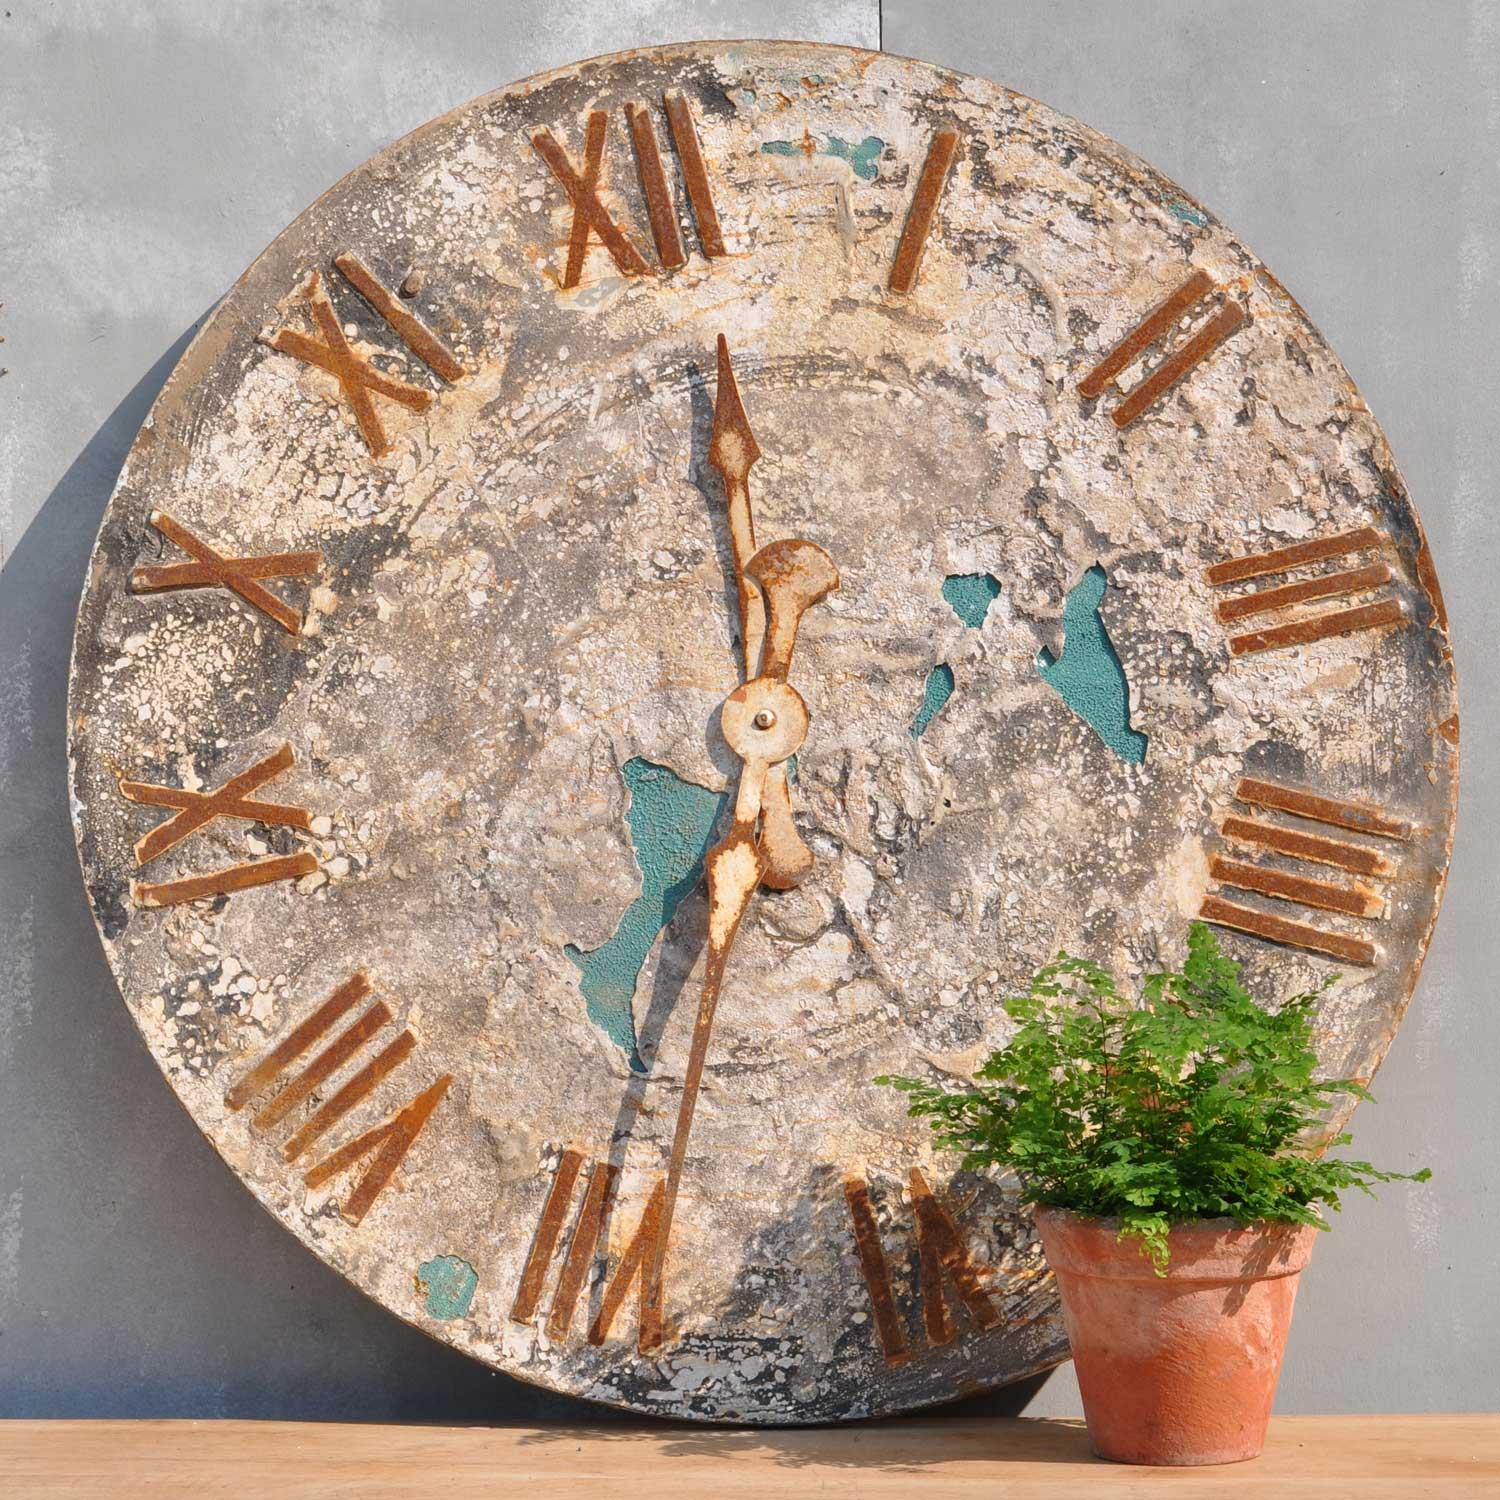 Decorative folk art style rustic clock face artwork home for Decorative things